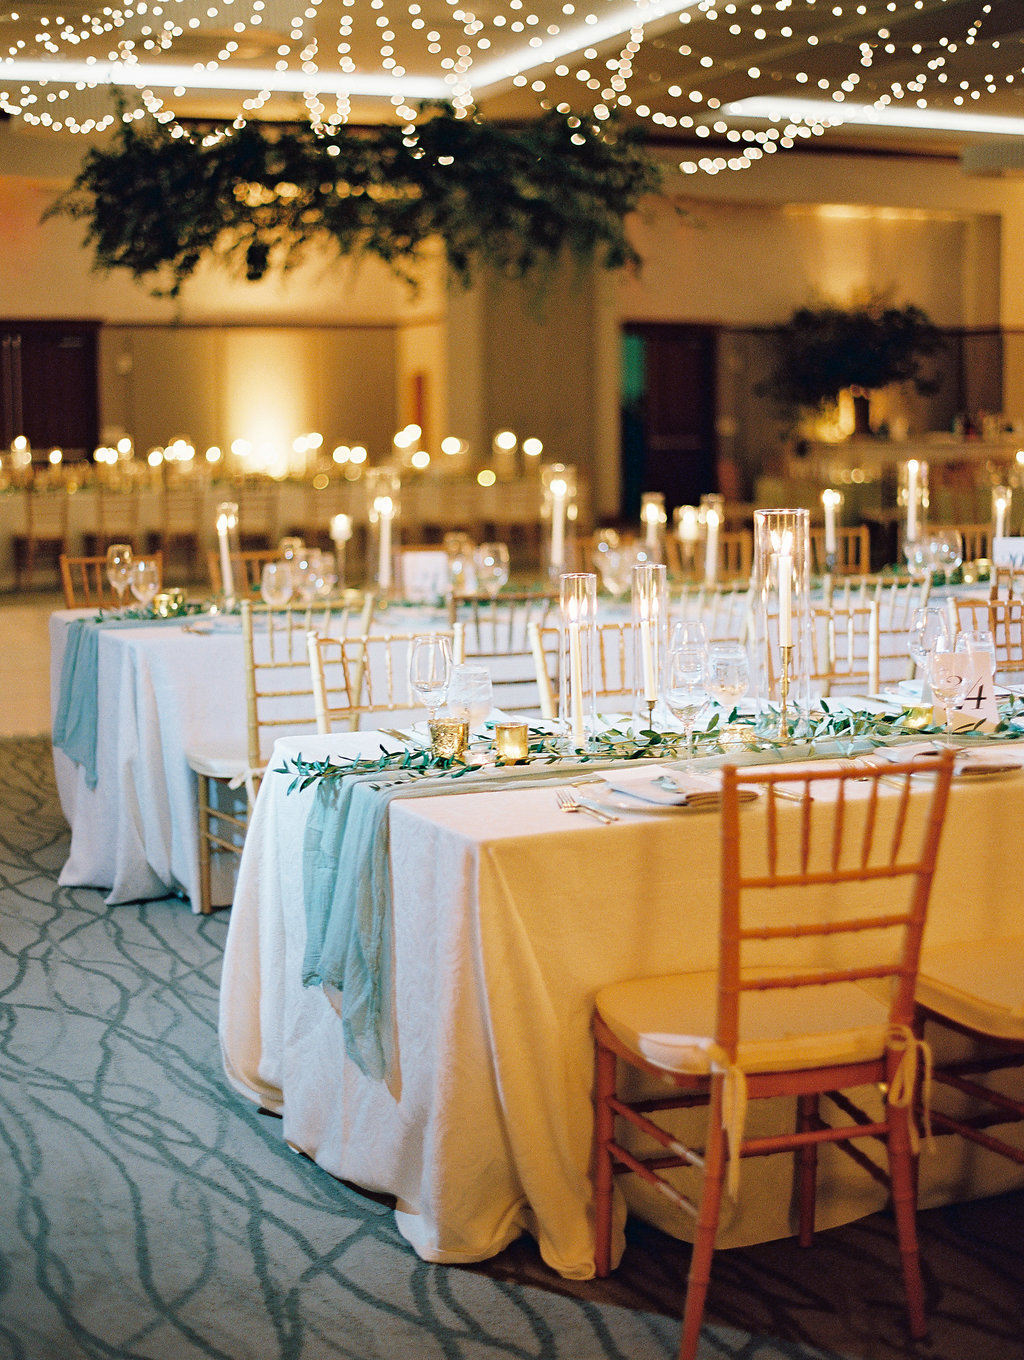 columbia-south-carolina-wedding-event-planner-jessica-rourke-204